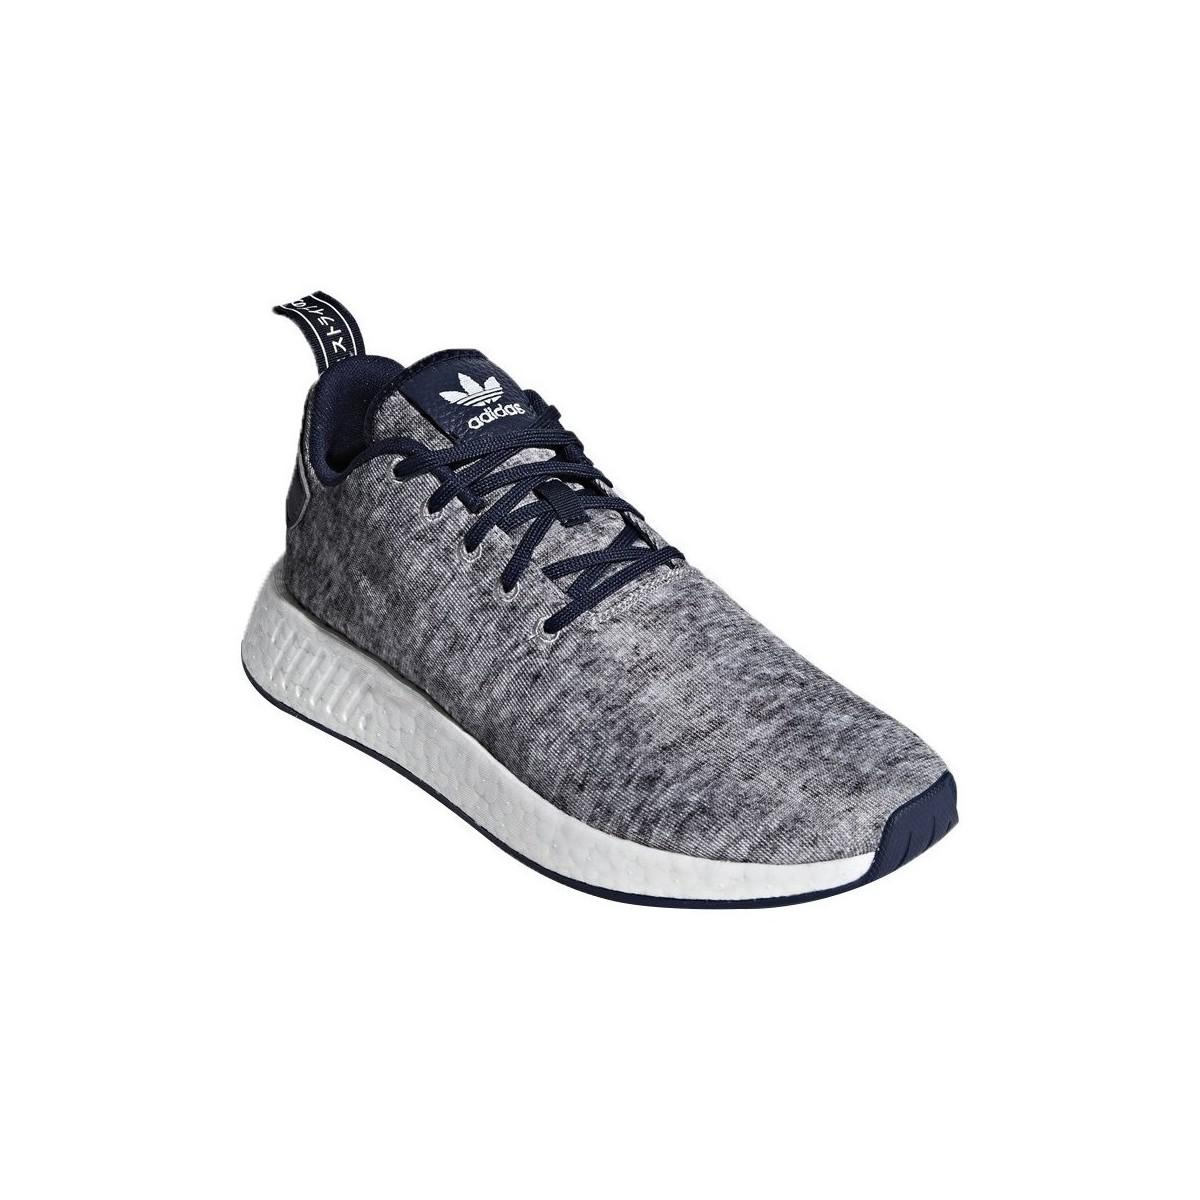 95ab5021d169b Adidas Nmd R2 Uas Men s Shoes (trainers) In Multicolour in Blue for ...